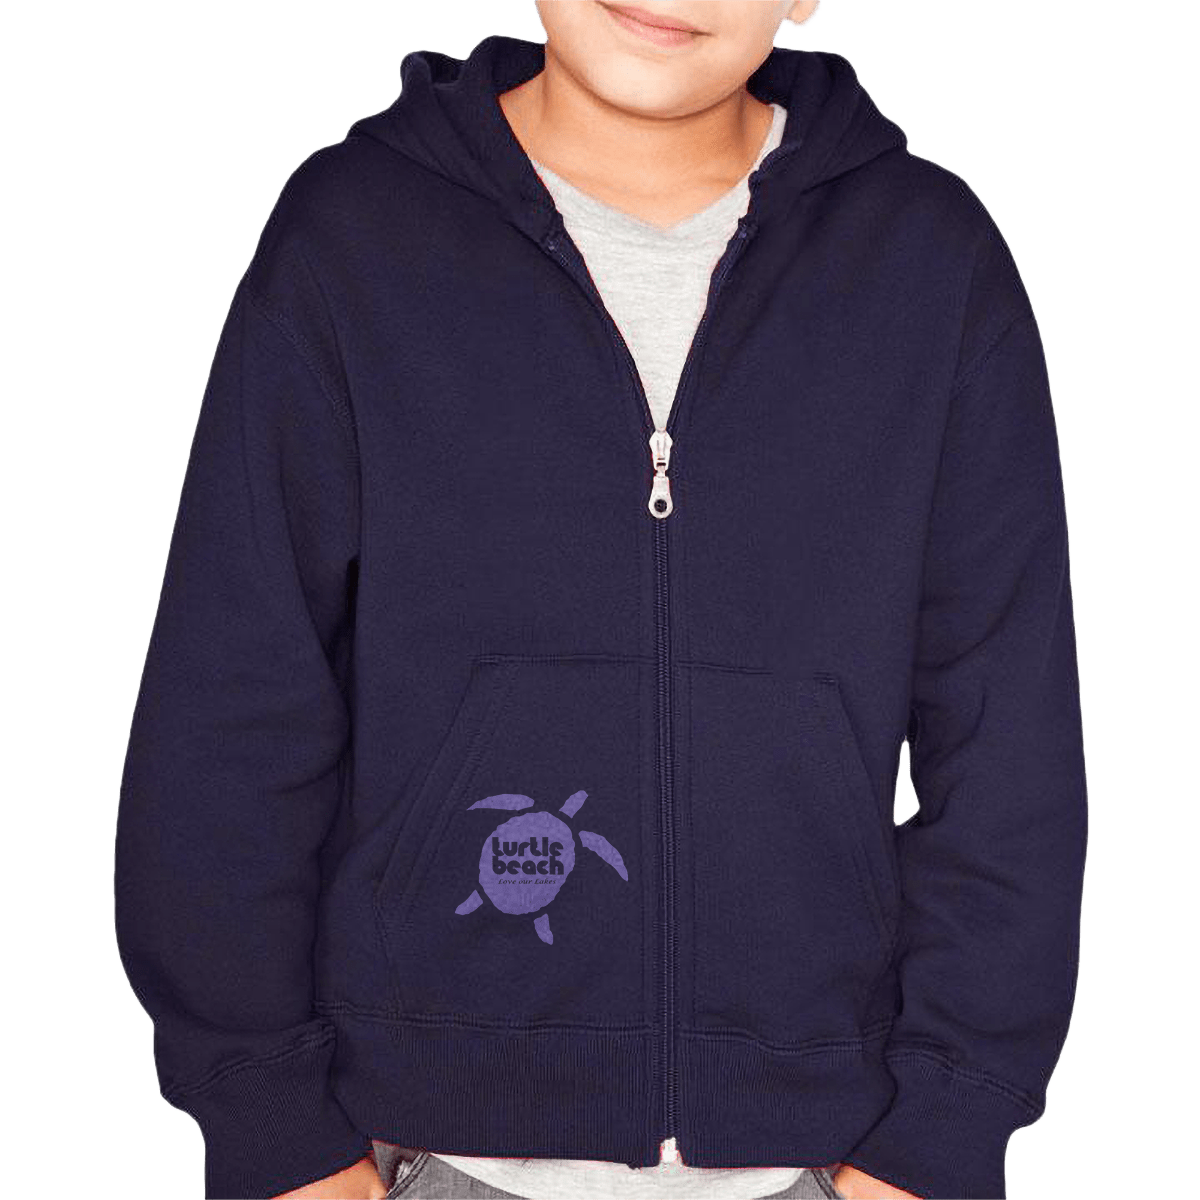 Turtle Beach Clothing purple love our lakes pocket logo, youth/kids